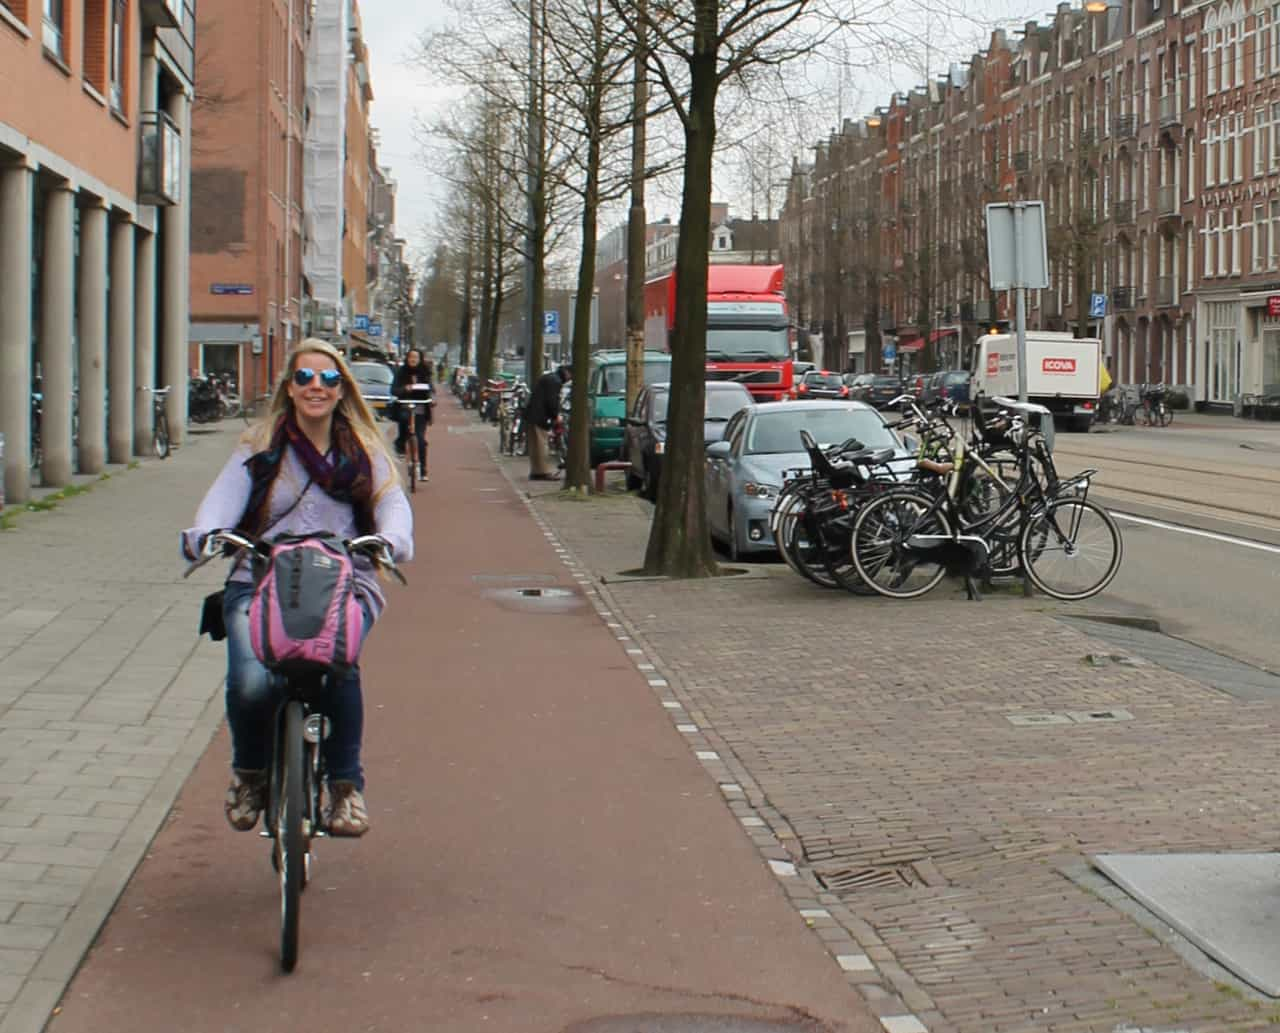 My friend Toni, loving the freedom of biking in Amsterdam